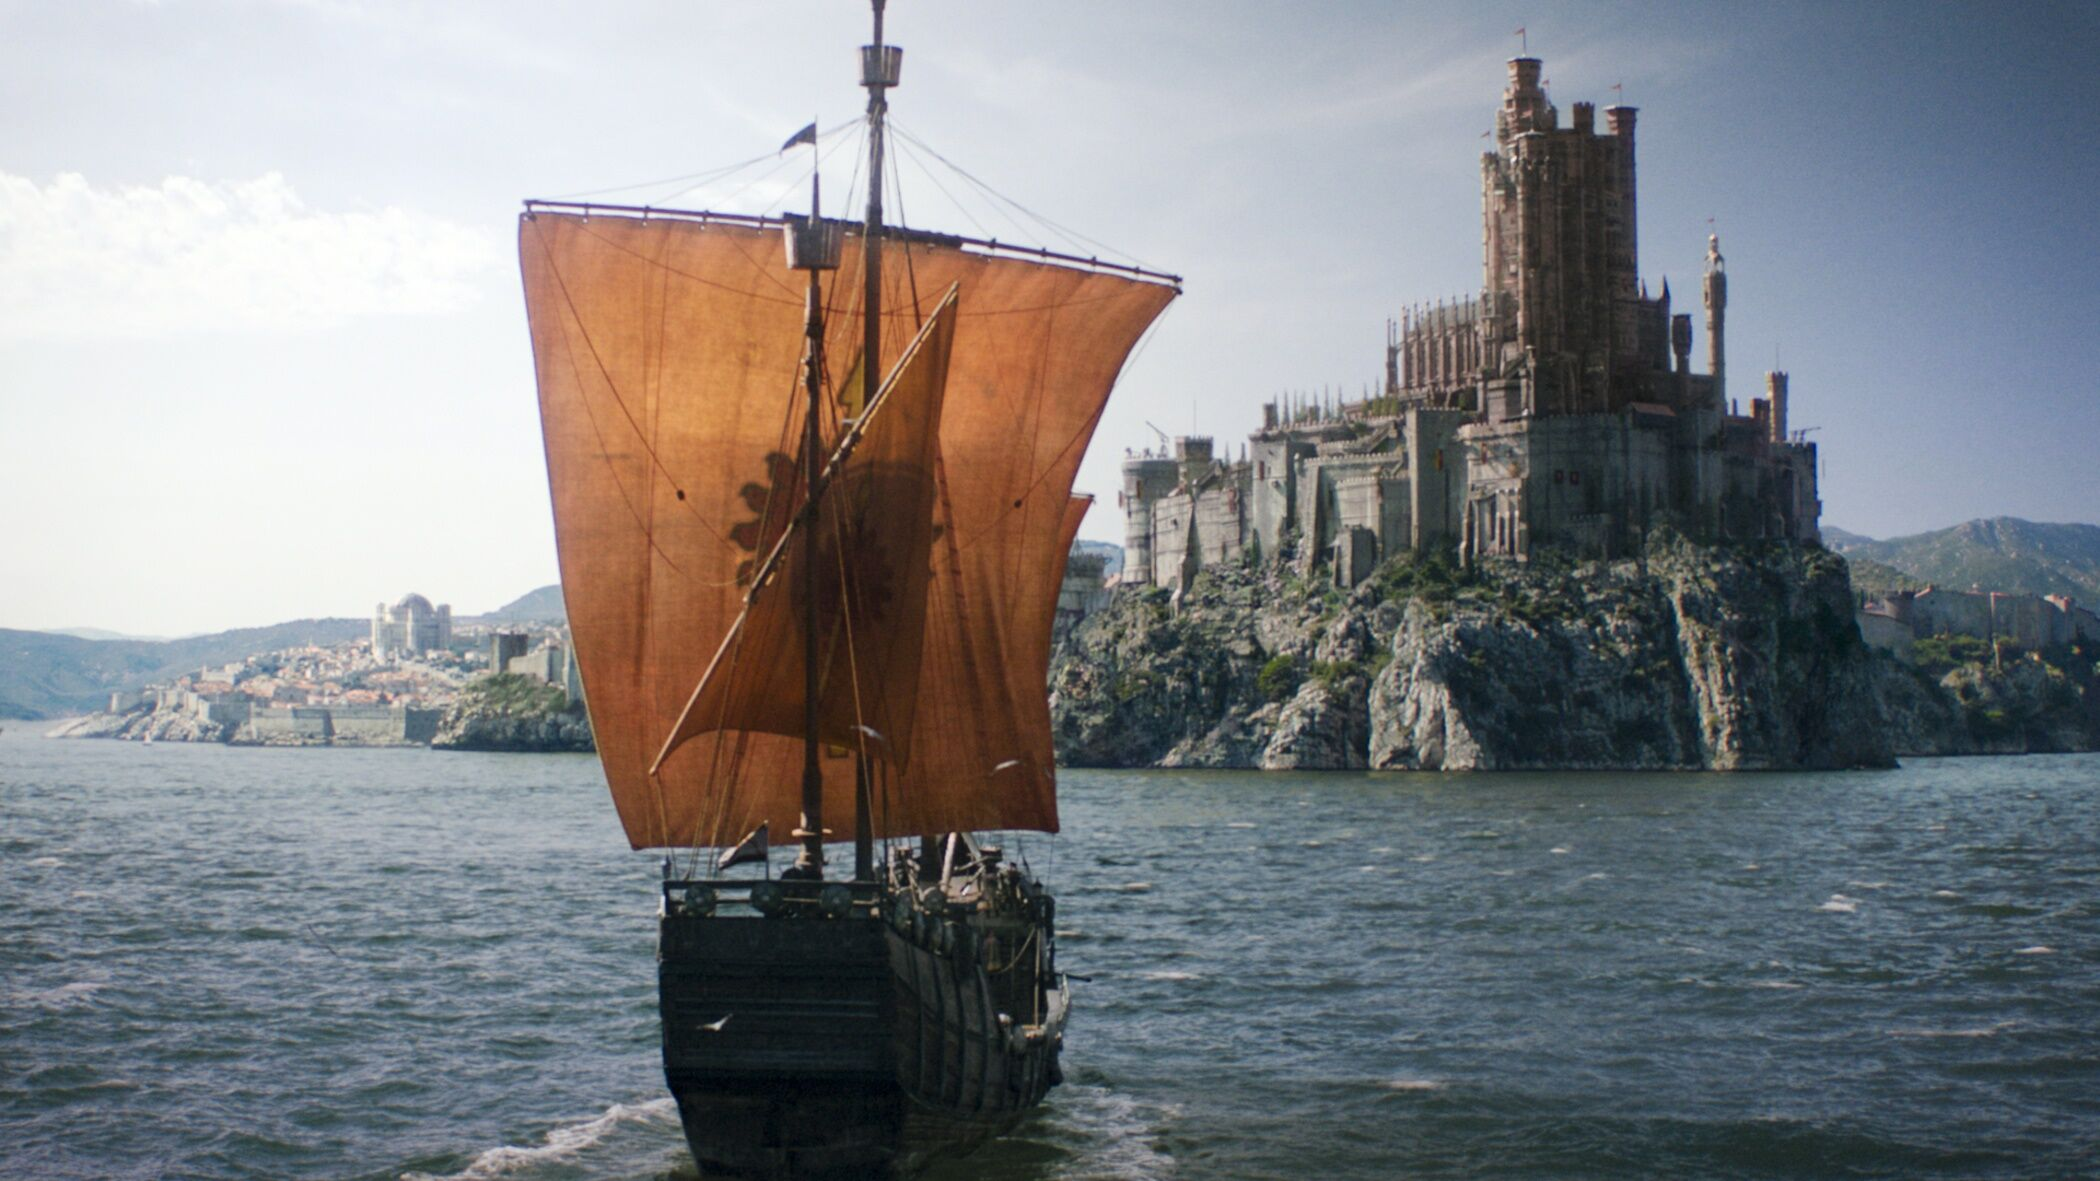 Pics from the filming Game of Thrones prequel reveals a ship with a mysterious sigil